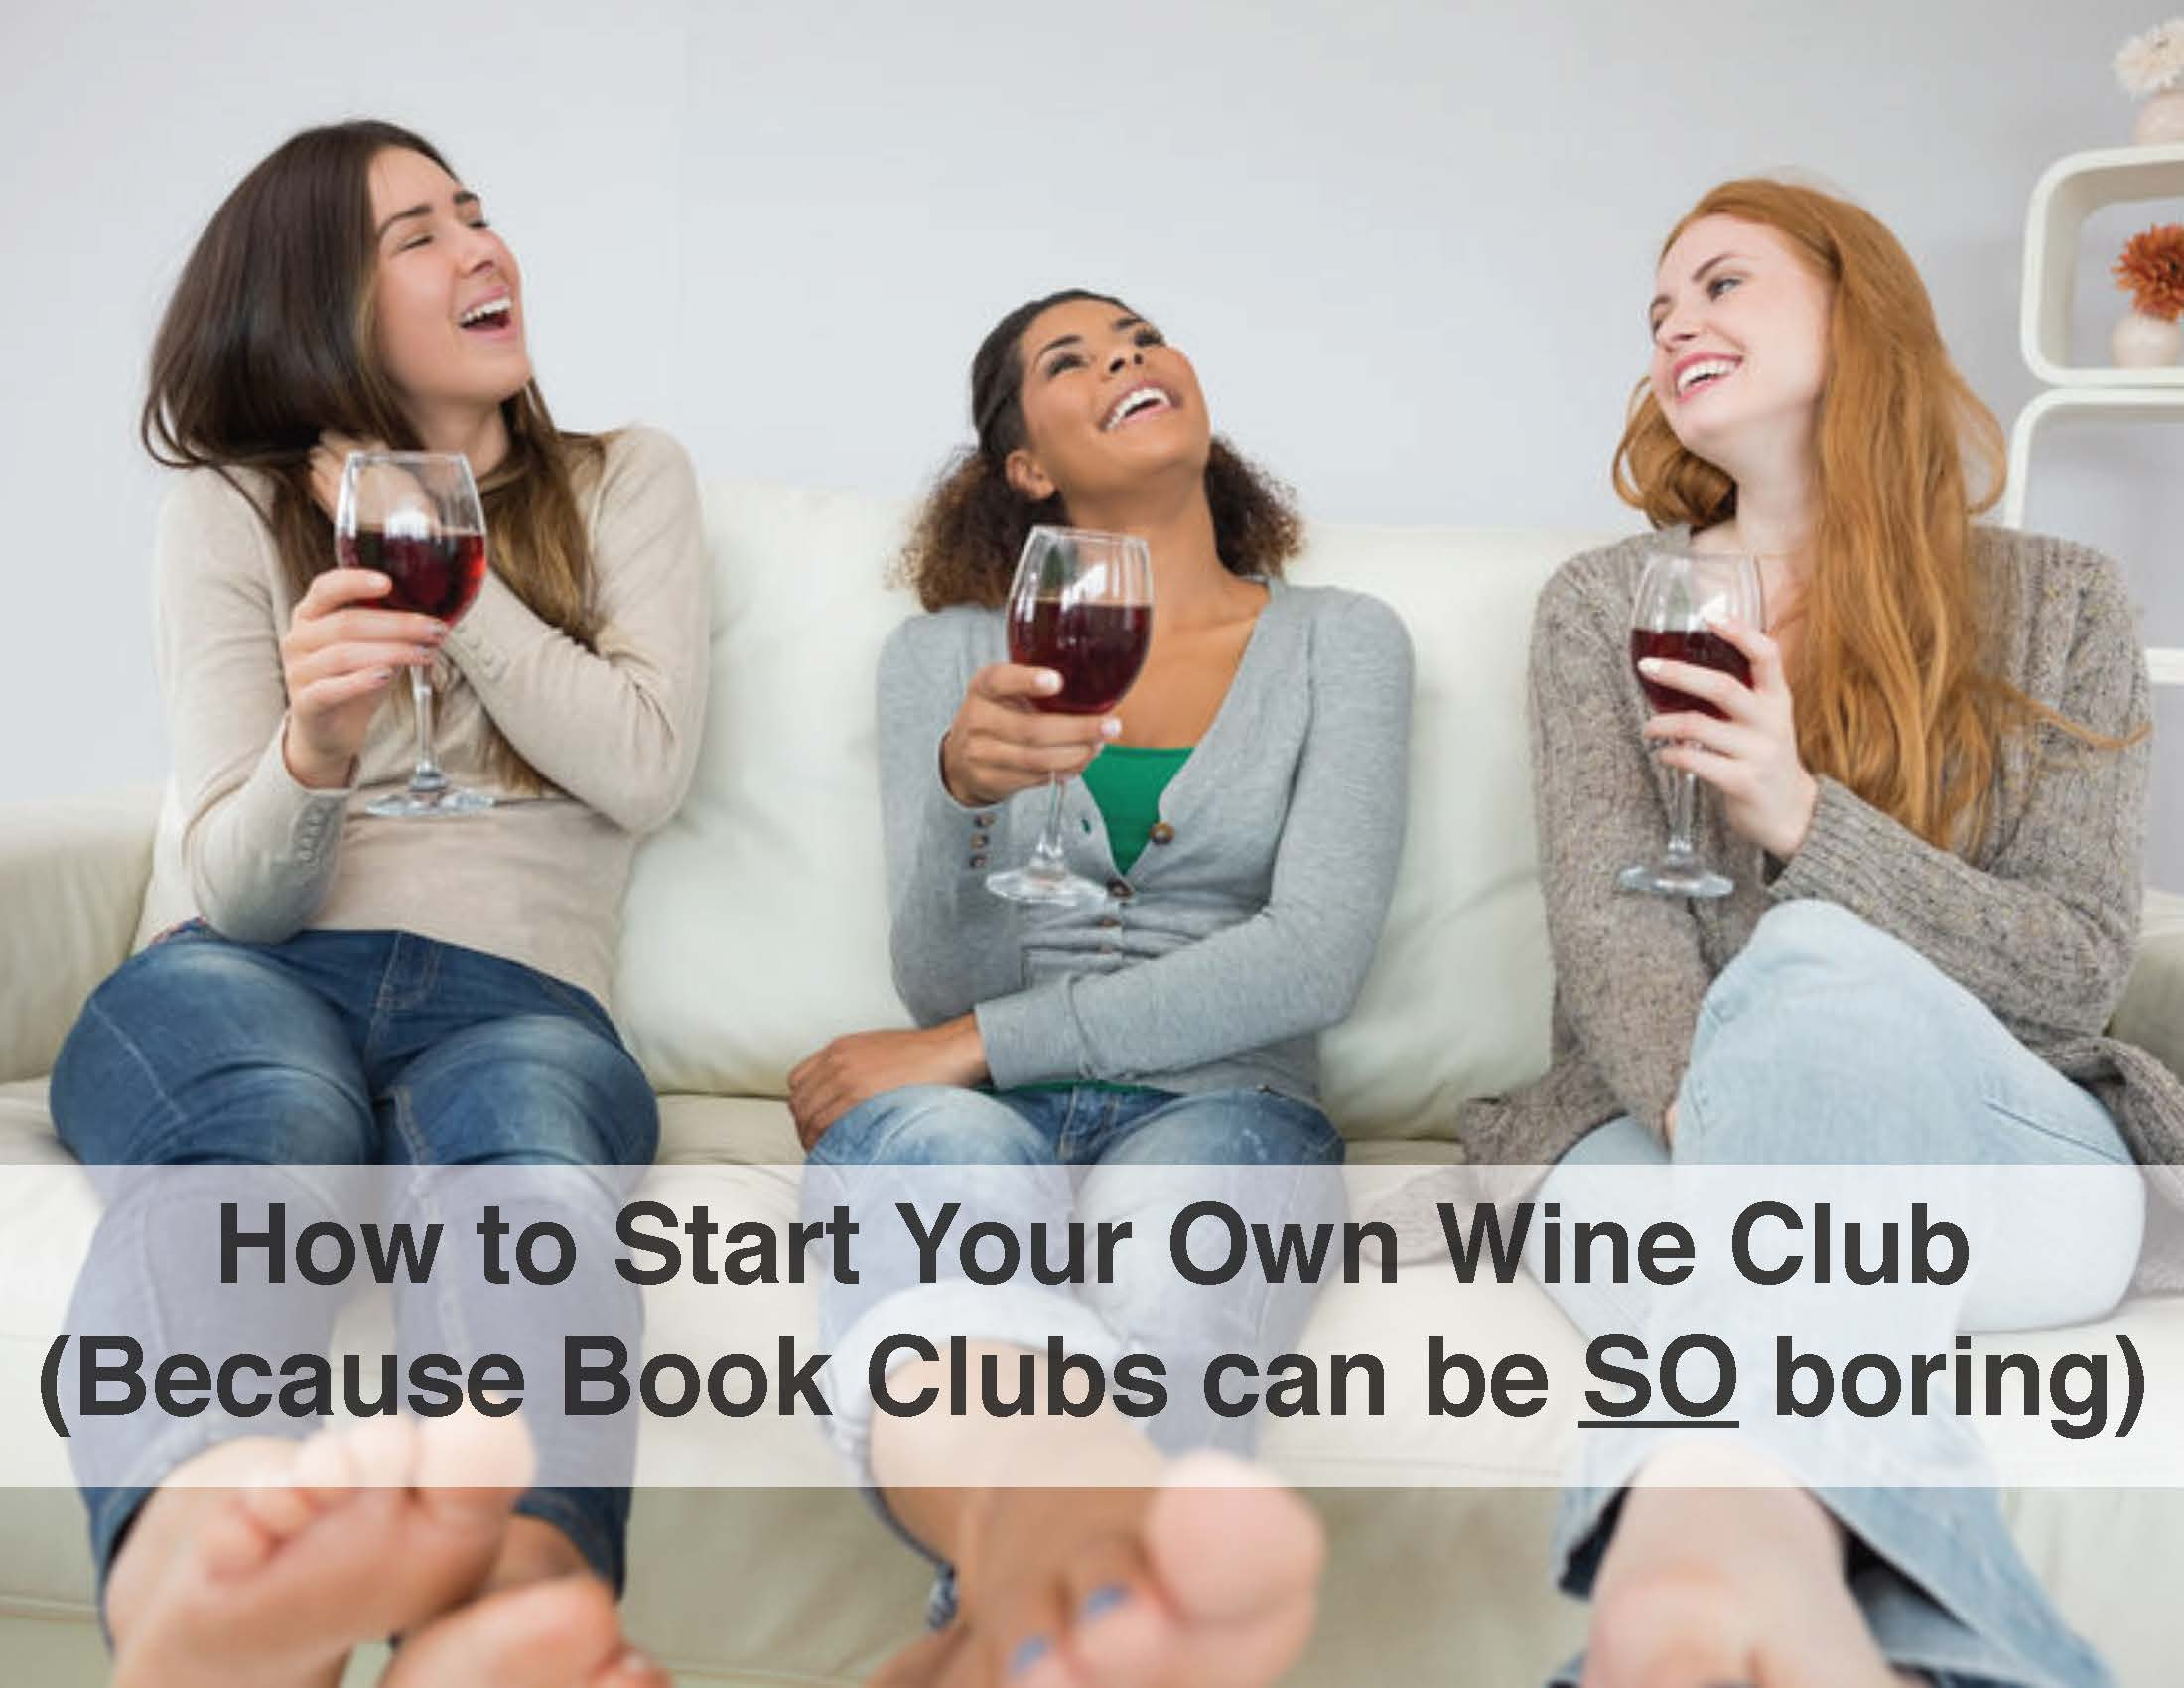 How To Start Your Own Wine Club (Because Book Clubs Can be SO Boring)